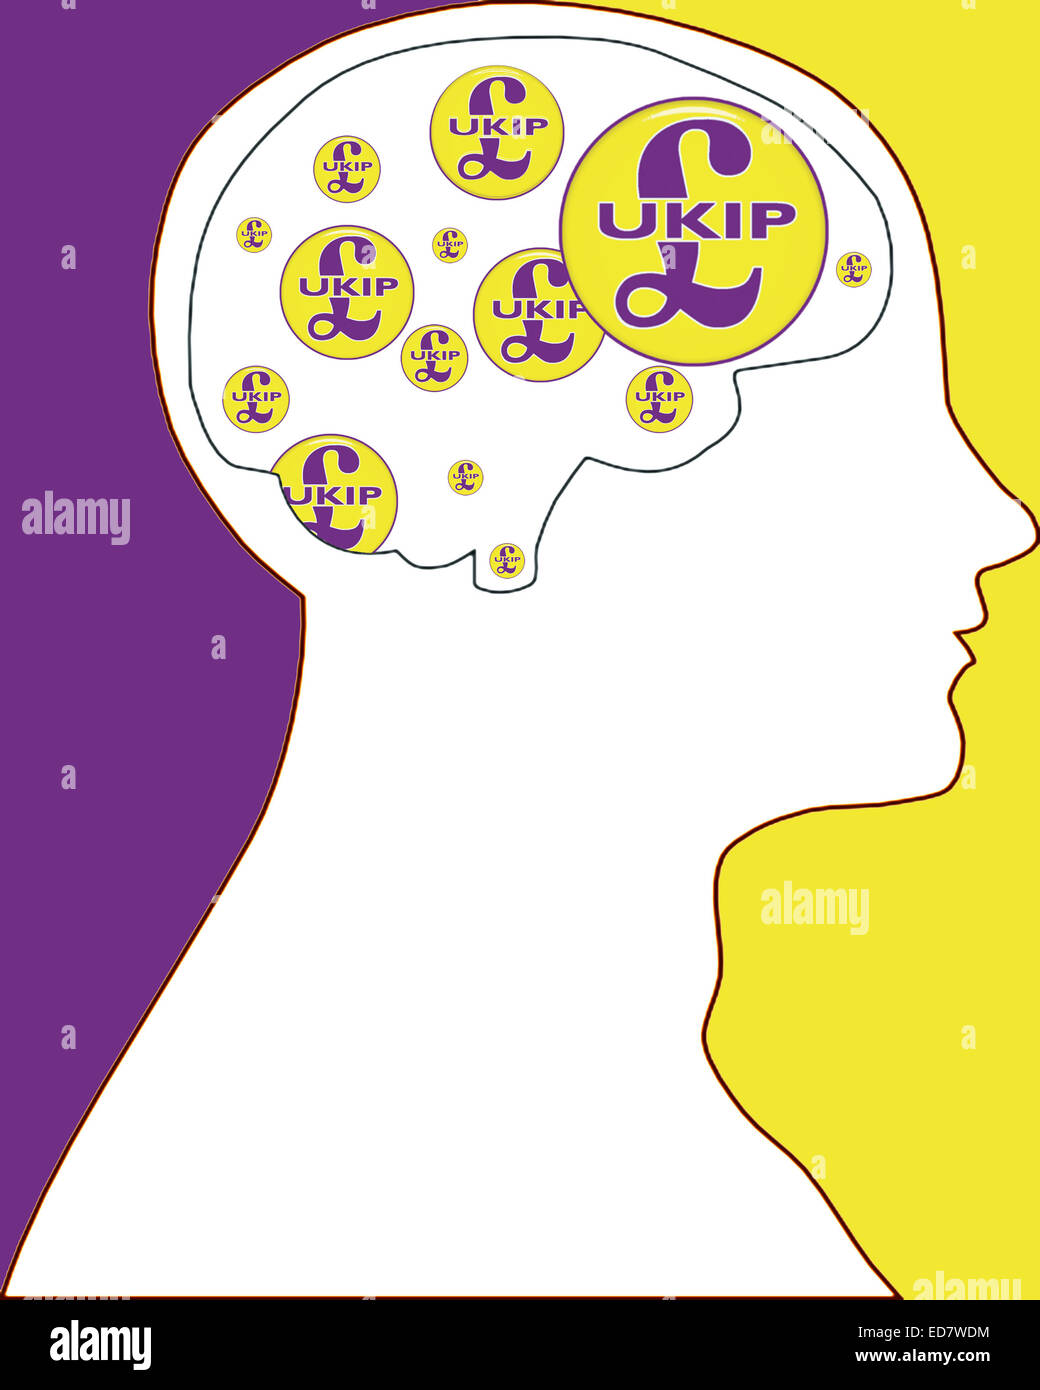 UKIP on my mind conceptual illustration for editorial purposes only. - Stock Image